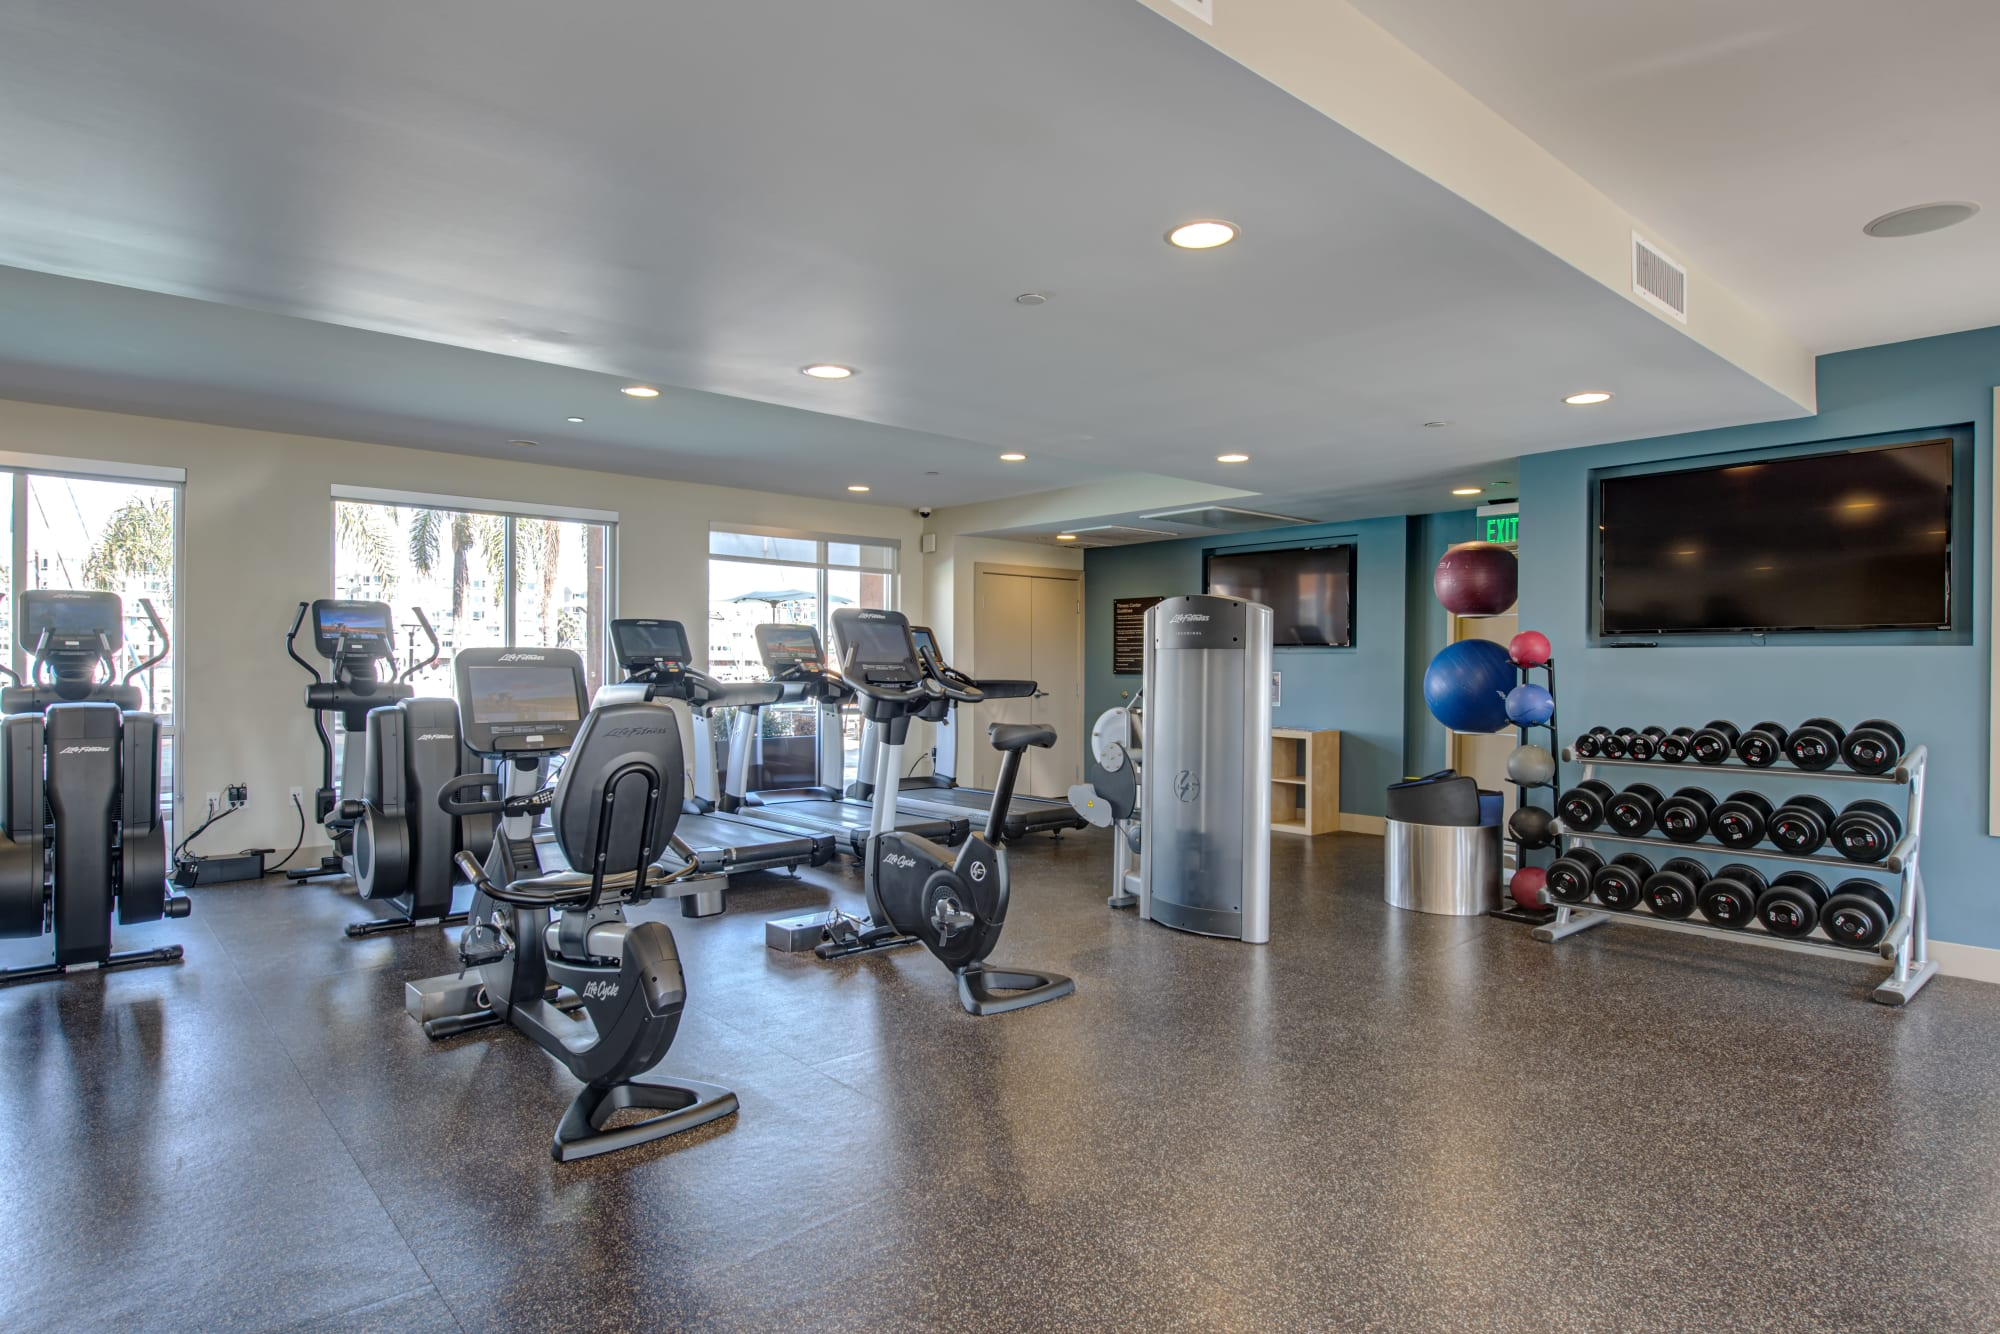 Enjoy working out at the community gym at Harborside Marina Bay Apartments in Marina del Rey, California